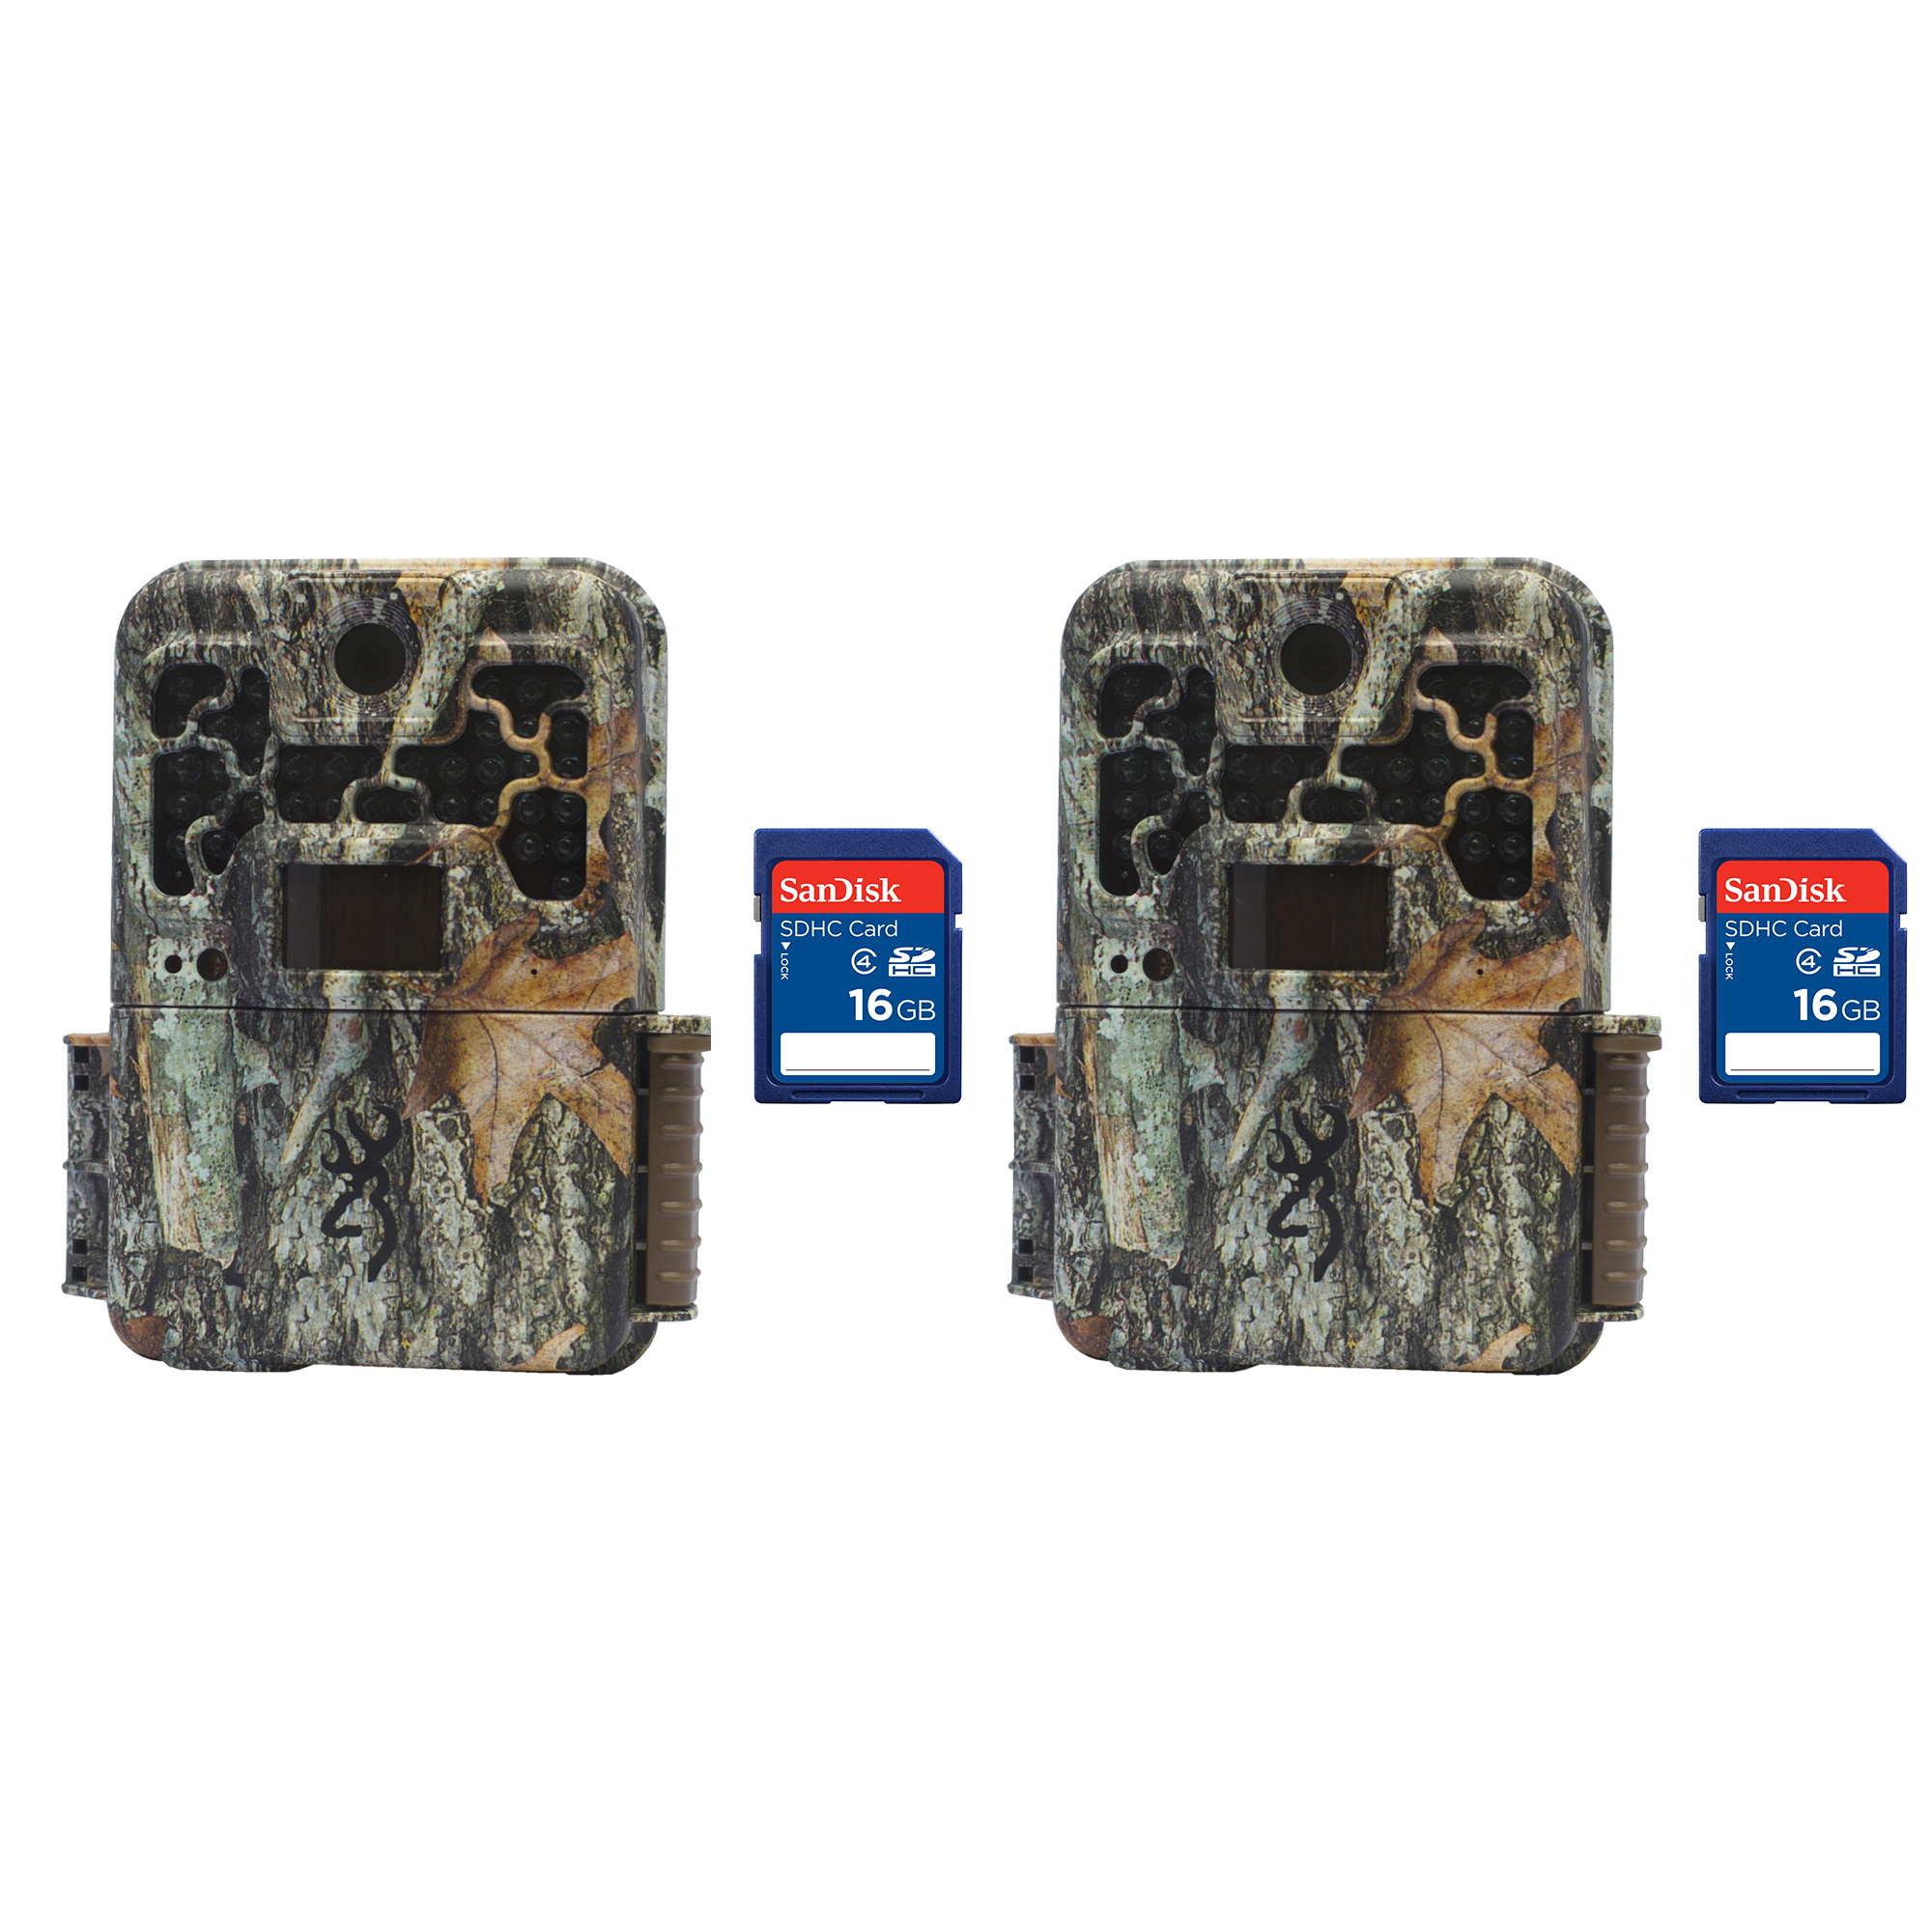 Browning Trail Cameras Recon Force Extreme 20MP Game Camera, 2 Pack + SD Cards by Browning Trail Cameras